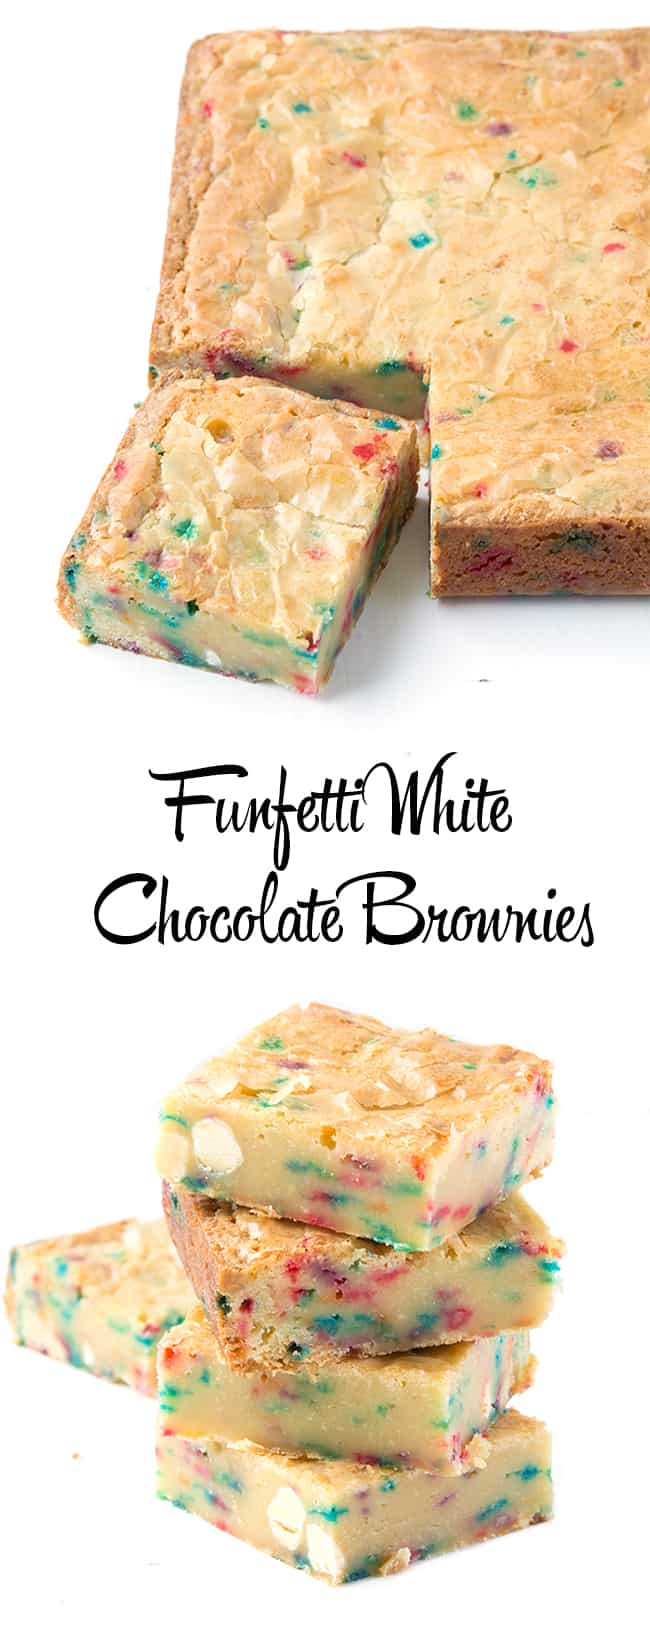 Funfetti White Chocolate Brownies | Sweetest Menu